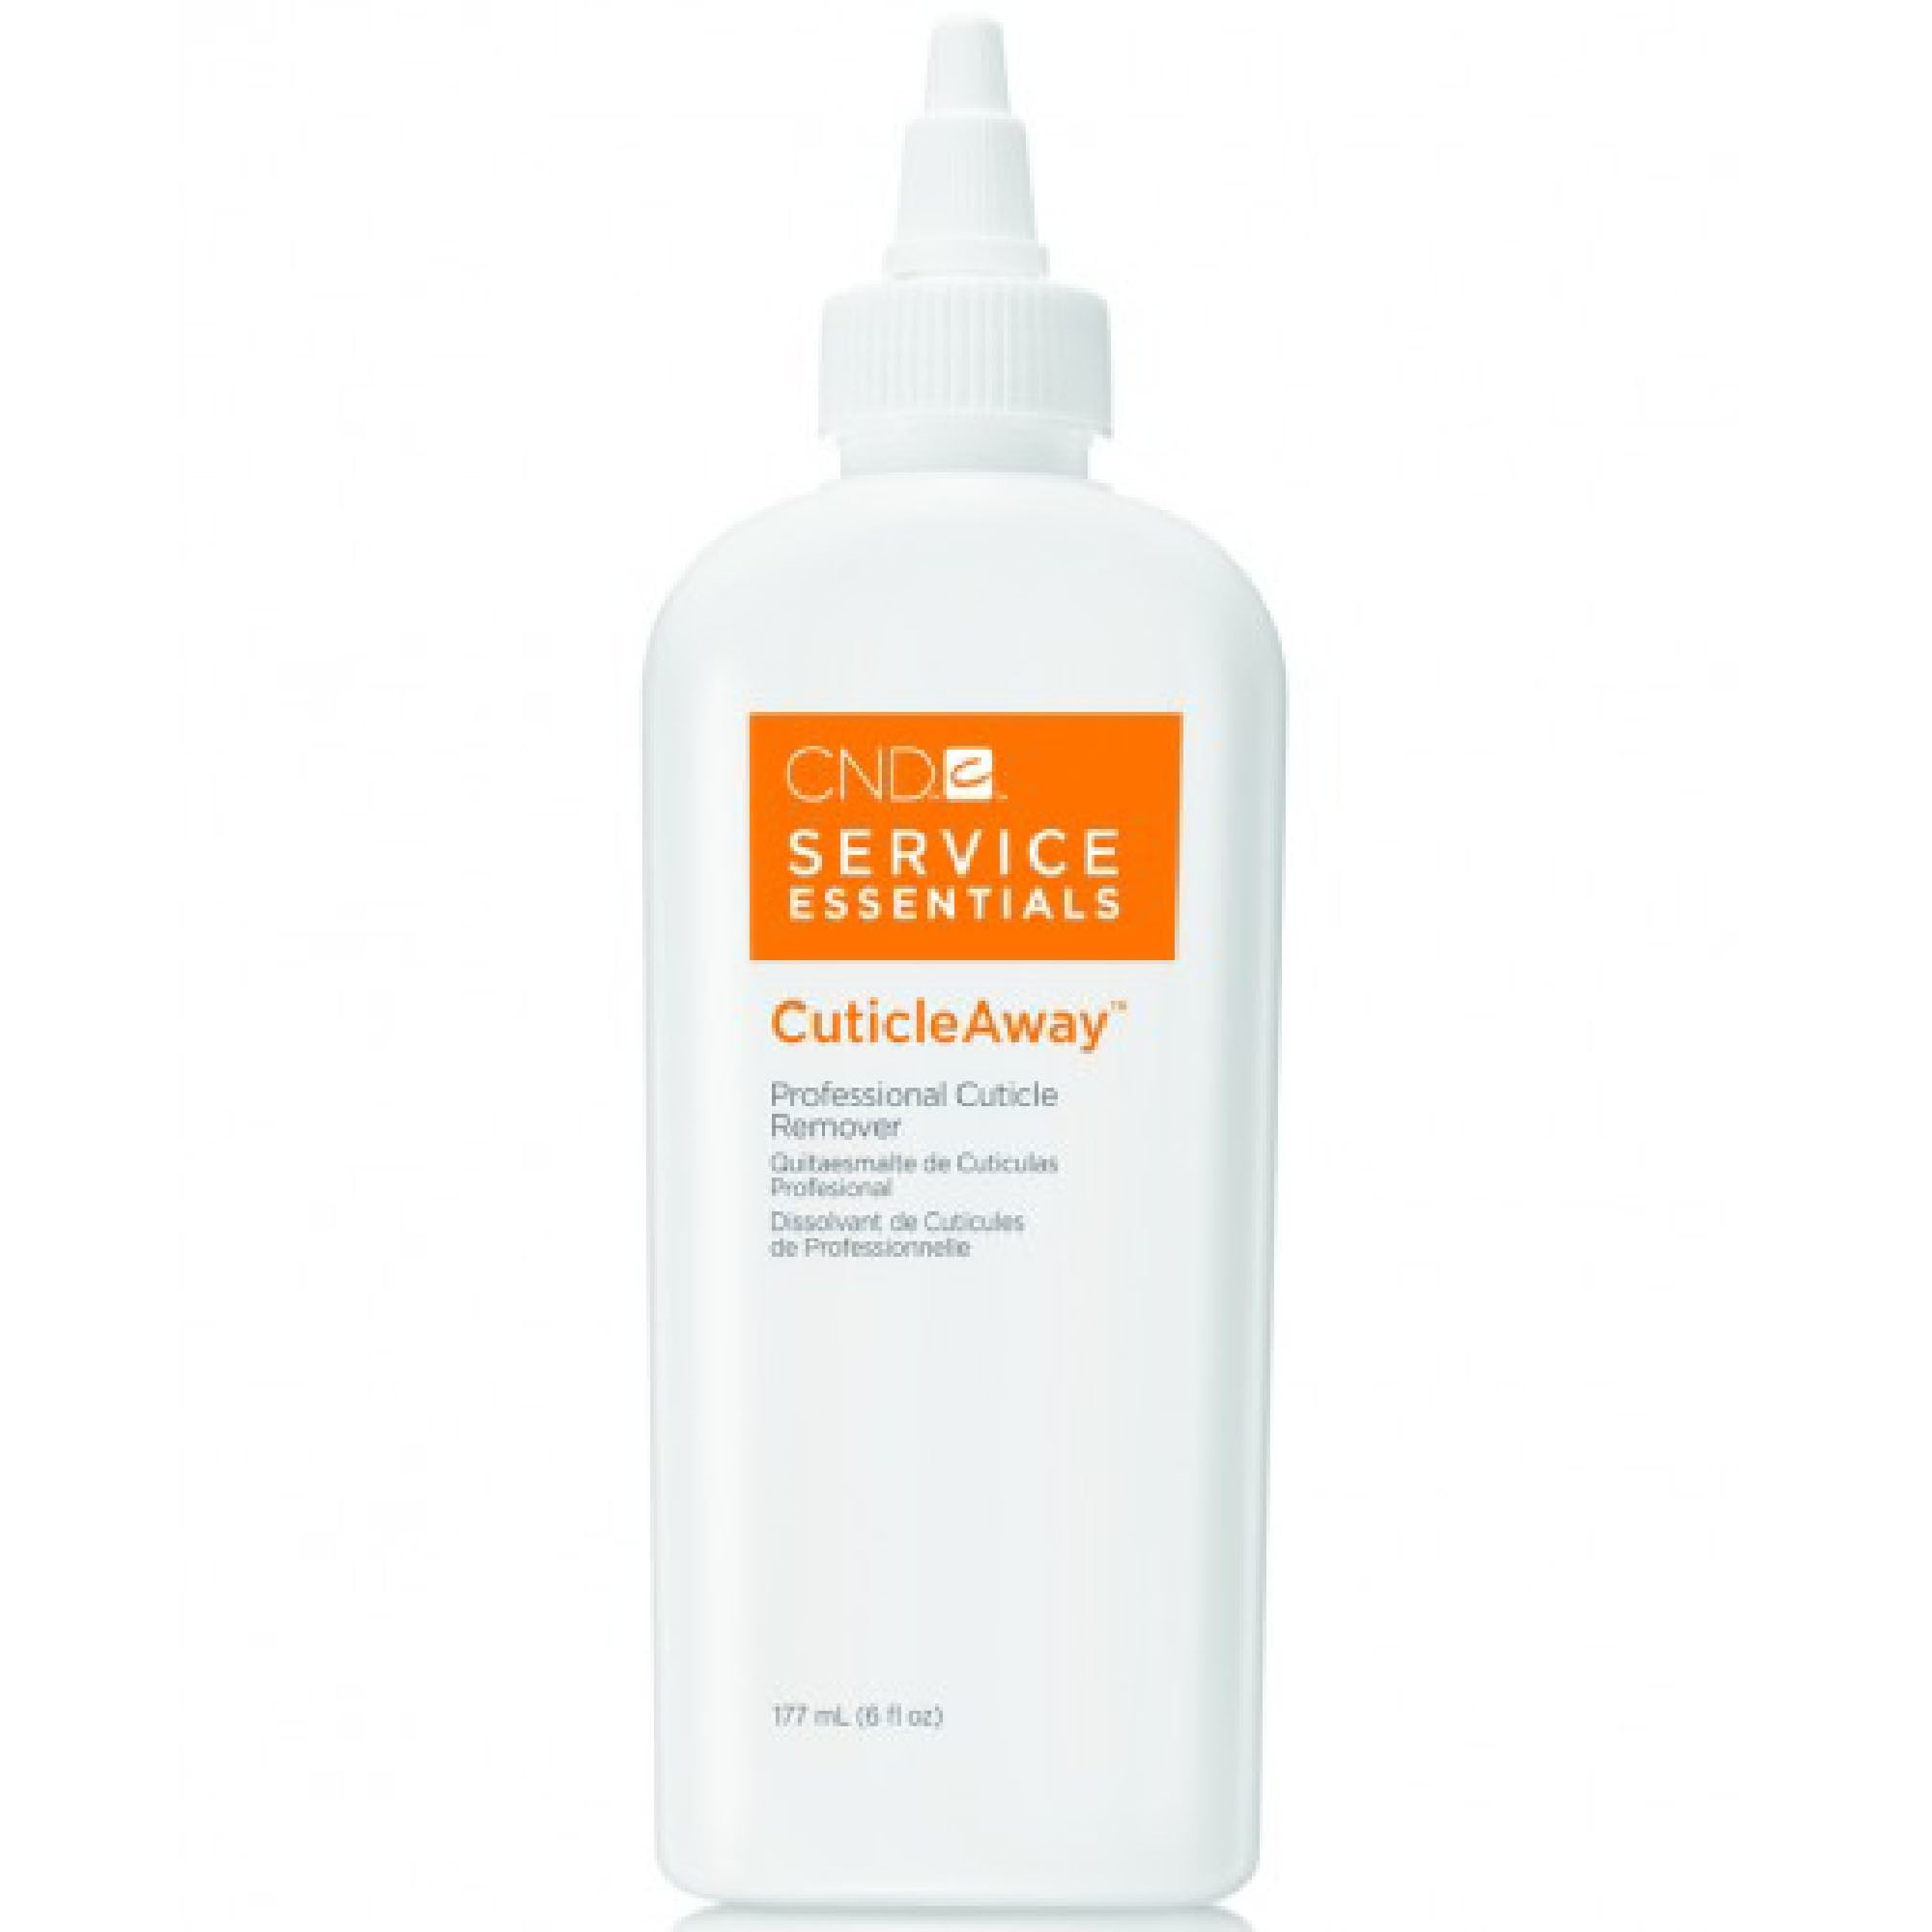 CND Essentials Cuticle Away Remover